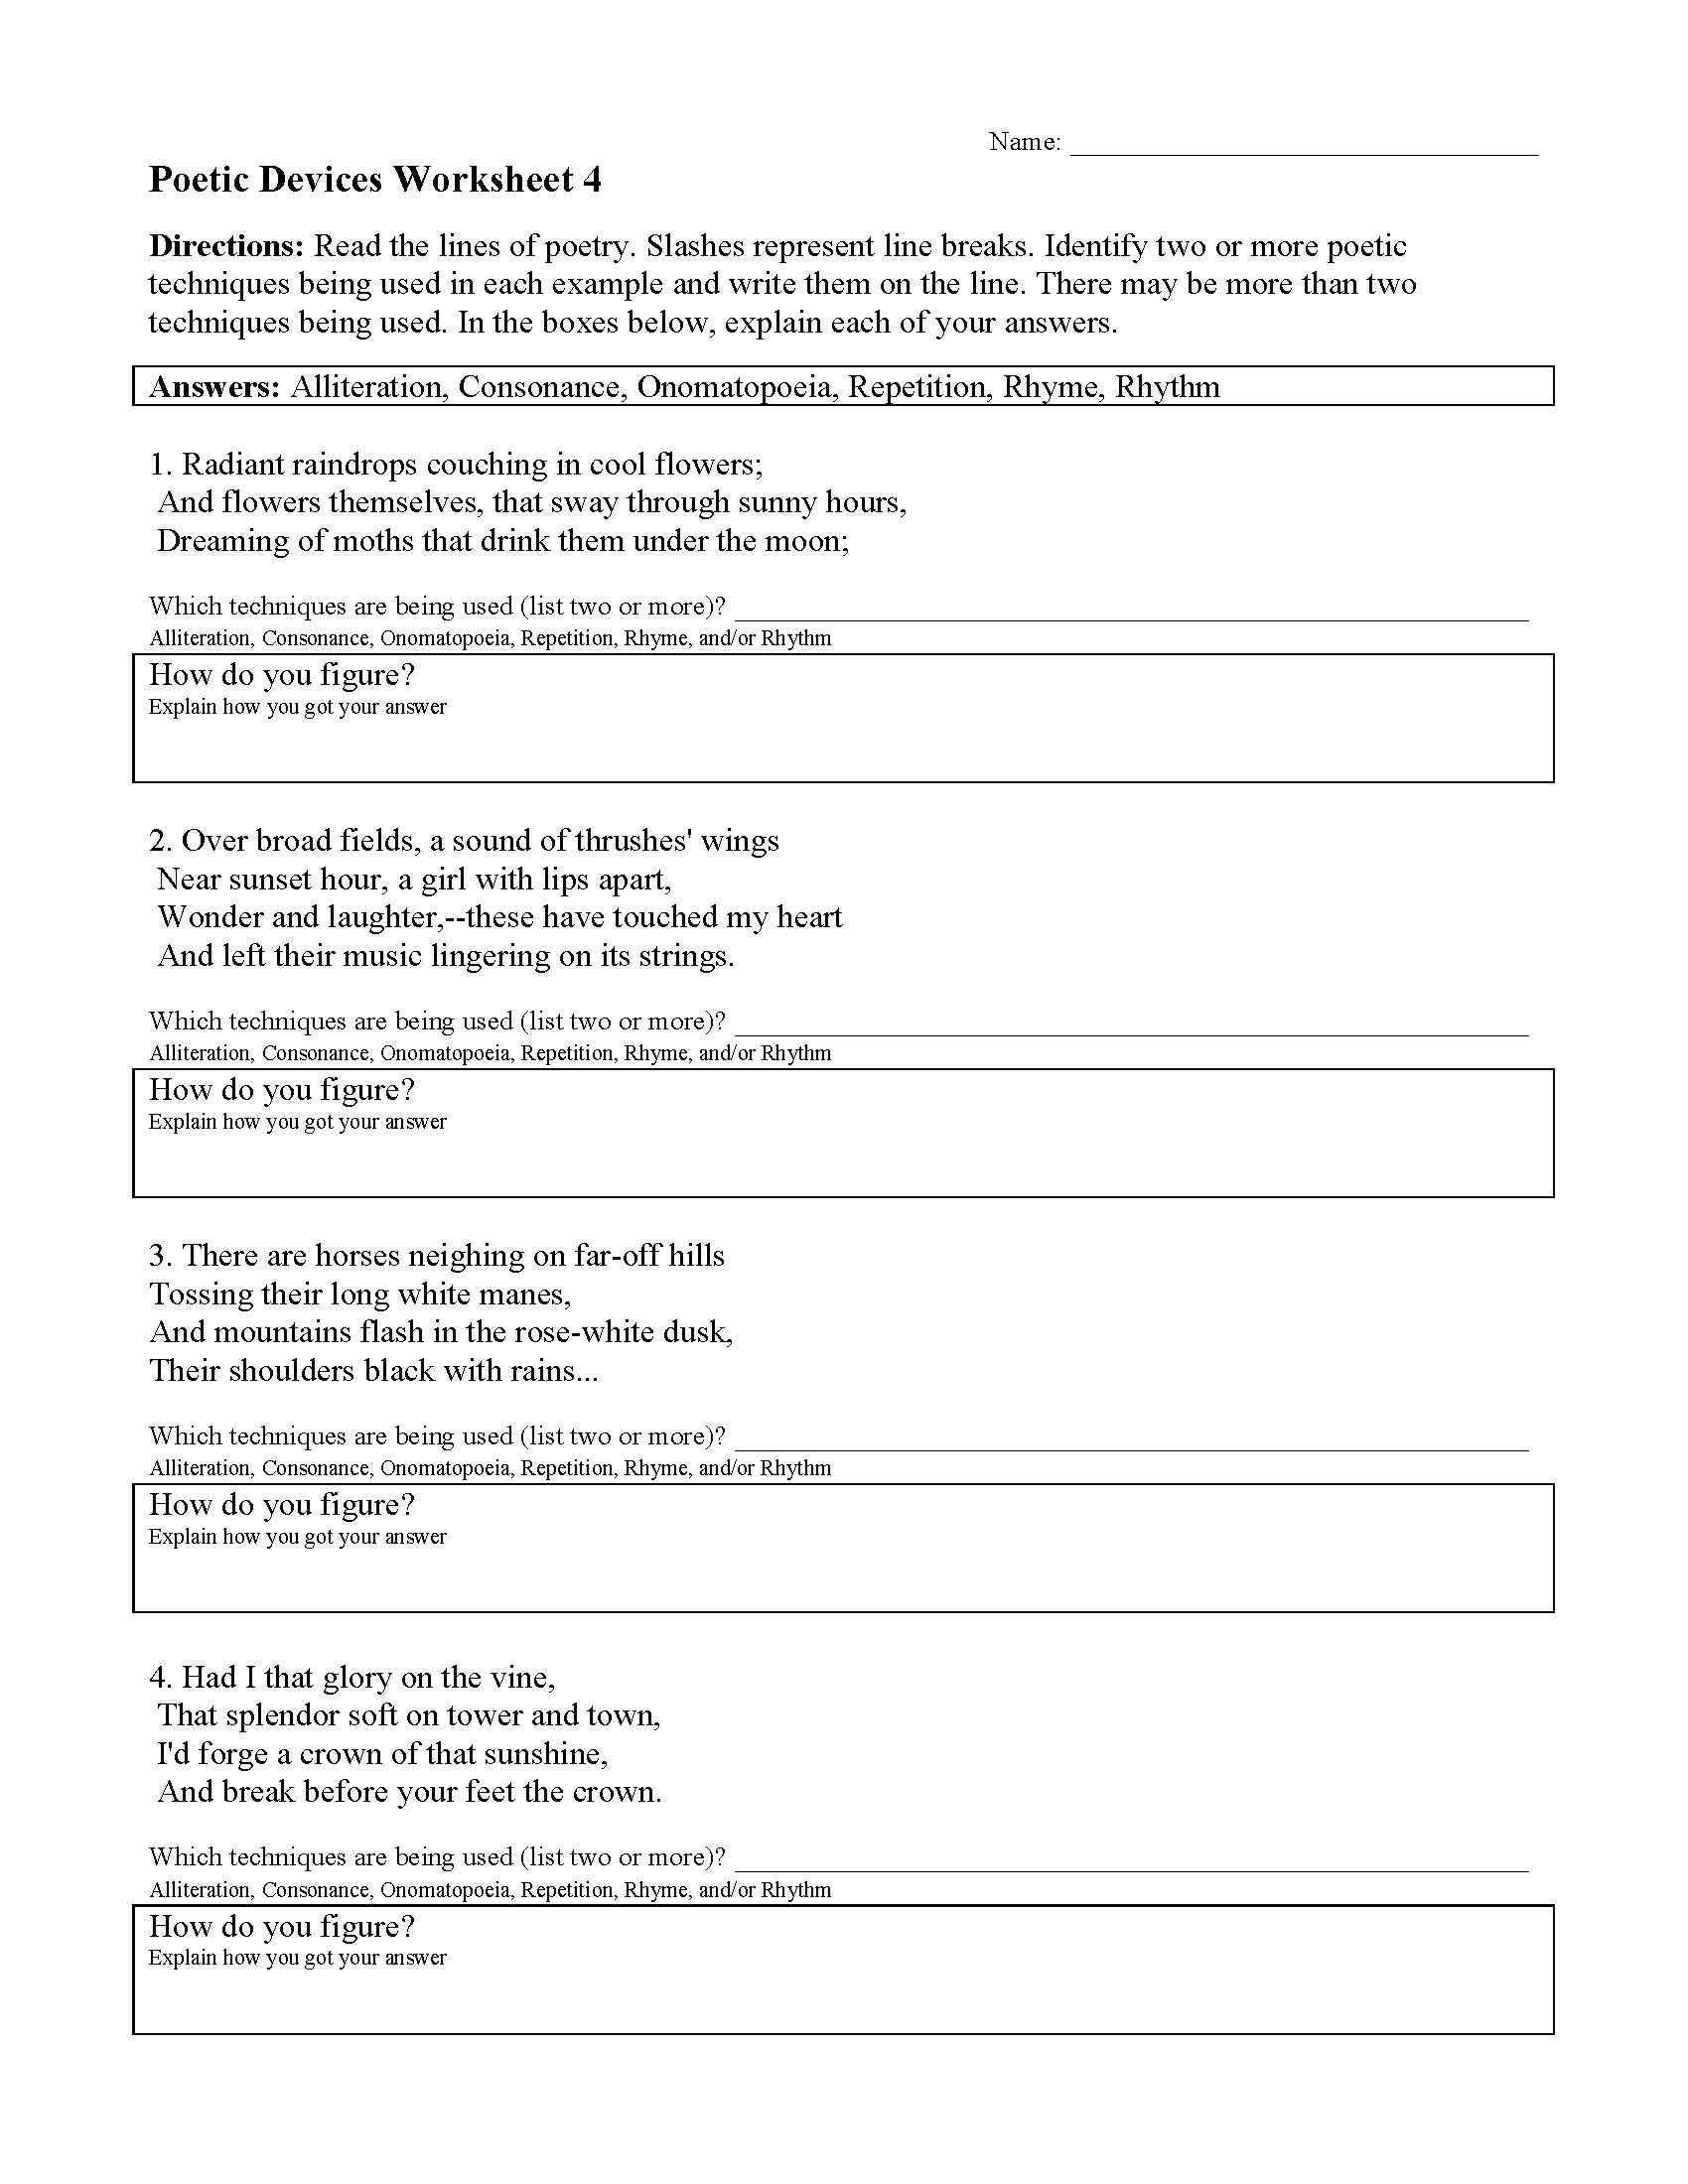 Sound Devices In Poetry Worksheet Poetic Devices Worksheet 4